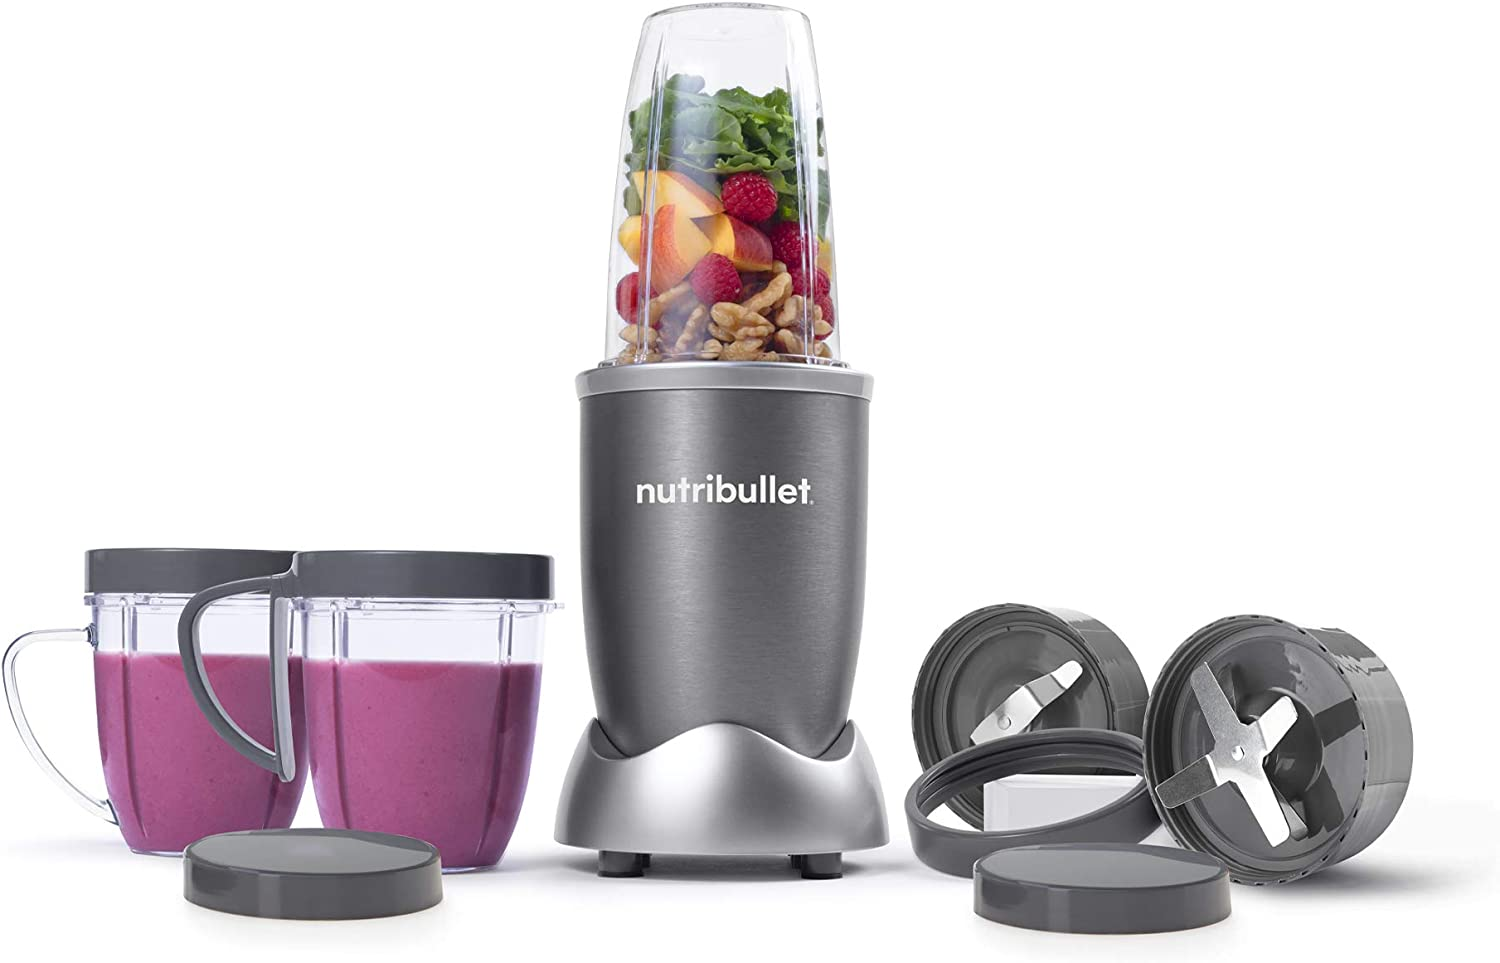 Nutribullet is the one of the most popular personal blenders on the market